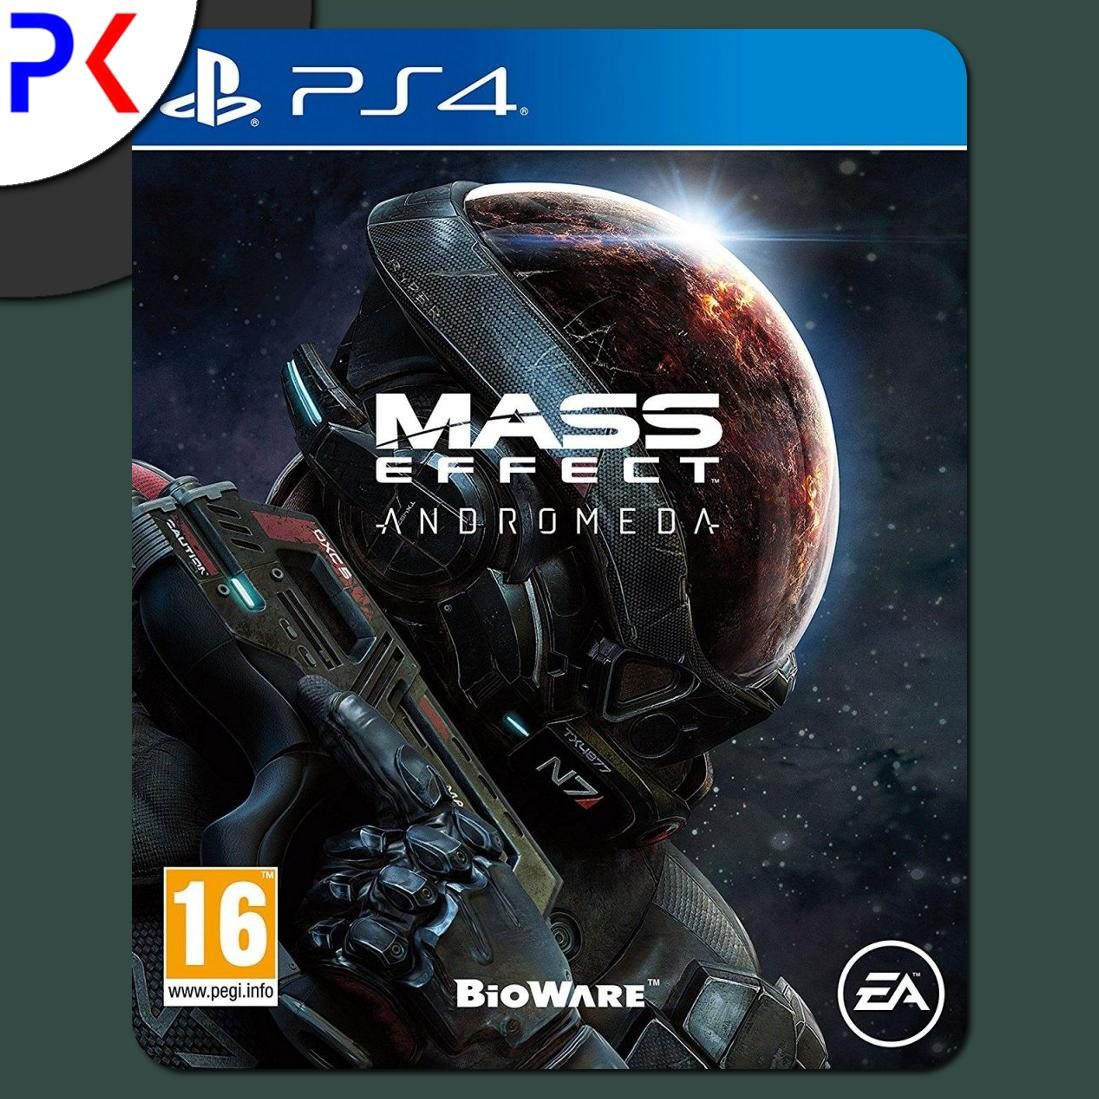 Price Ps4 Mass Effect Andromeda R3 Online Singapore